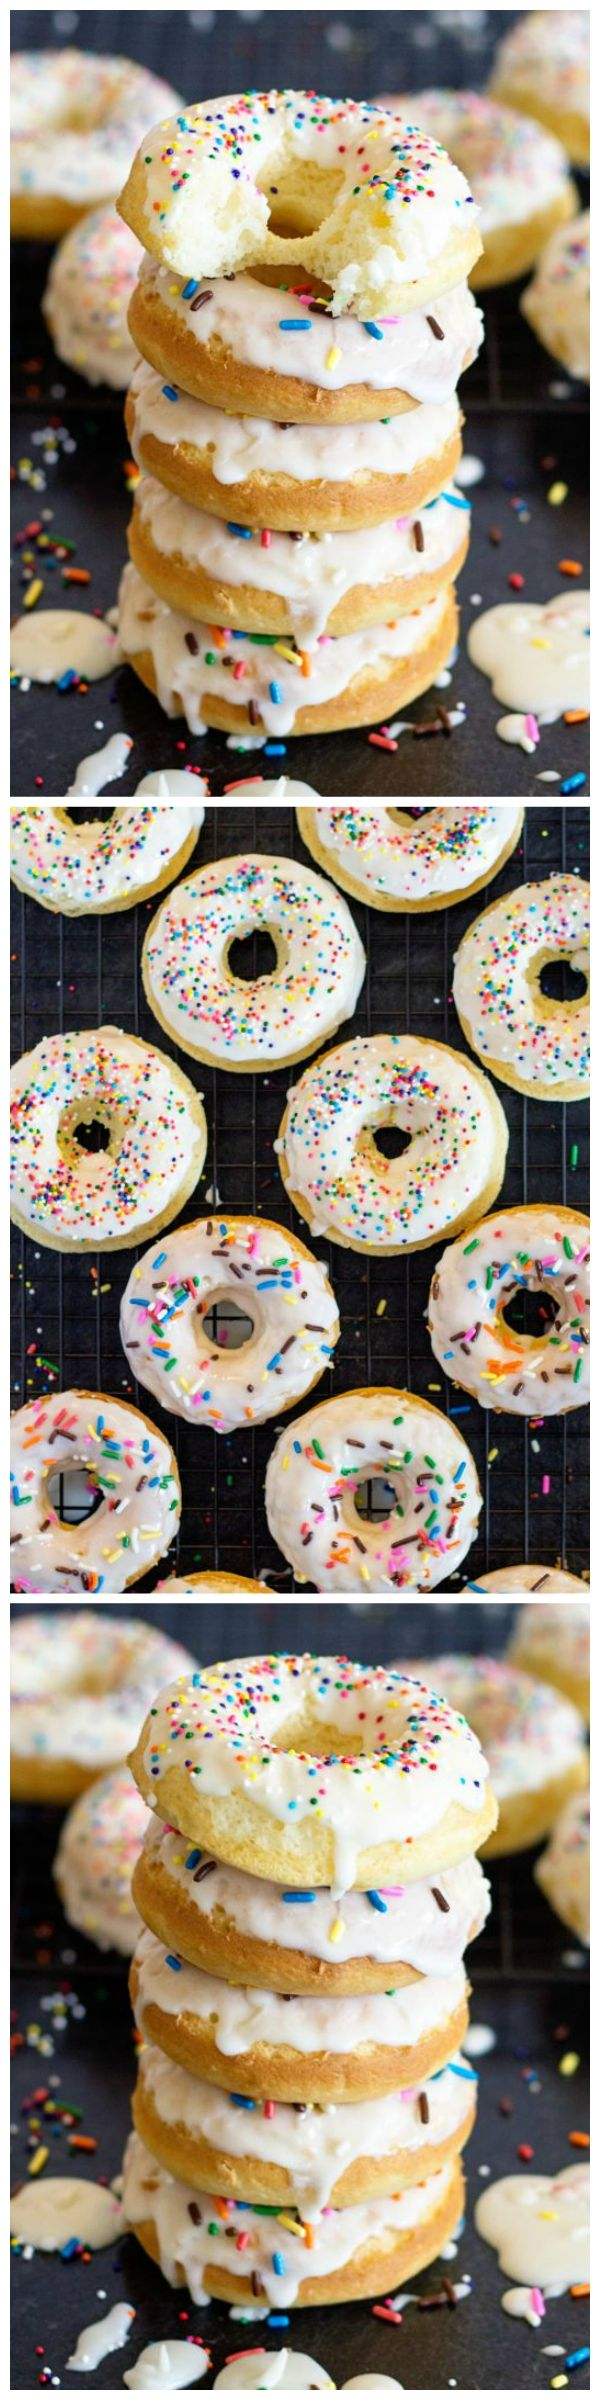 Baked donuts made the quick and easy way with a pre-made boxed cake mix!